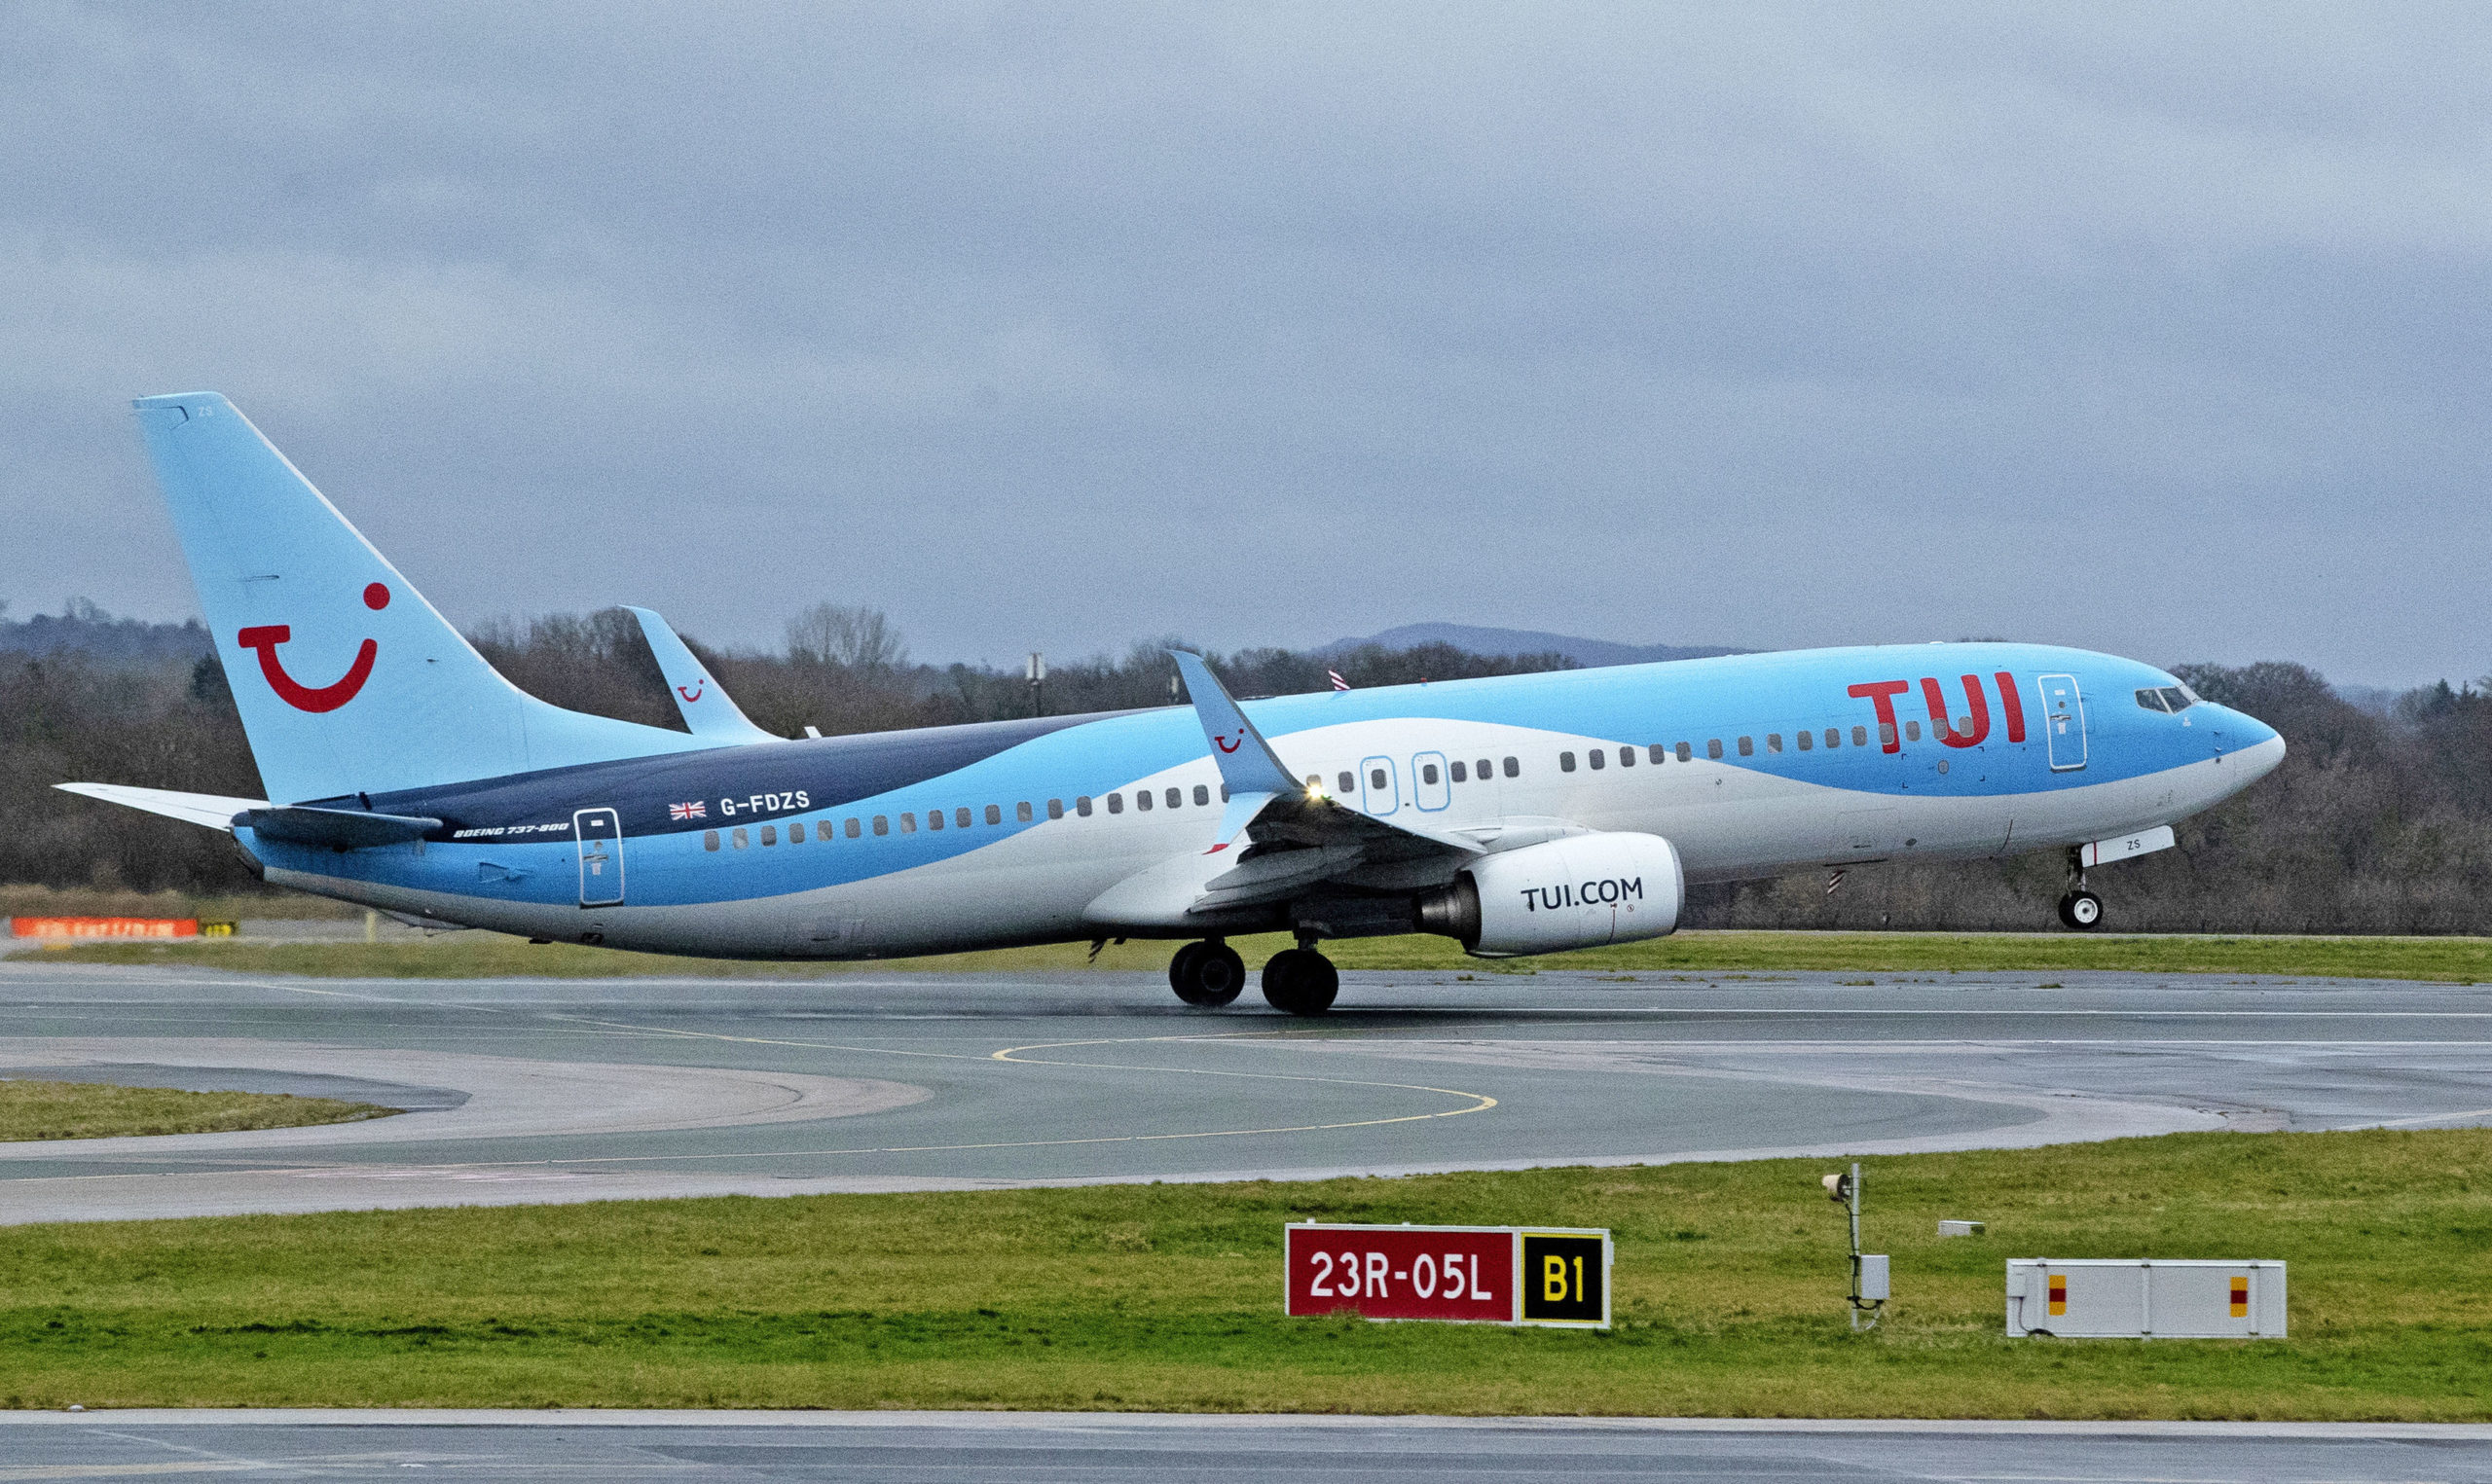 TUI has confirmed it will only resume flights to Tenerife in October